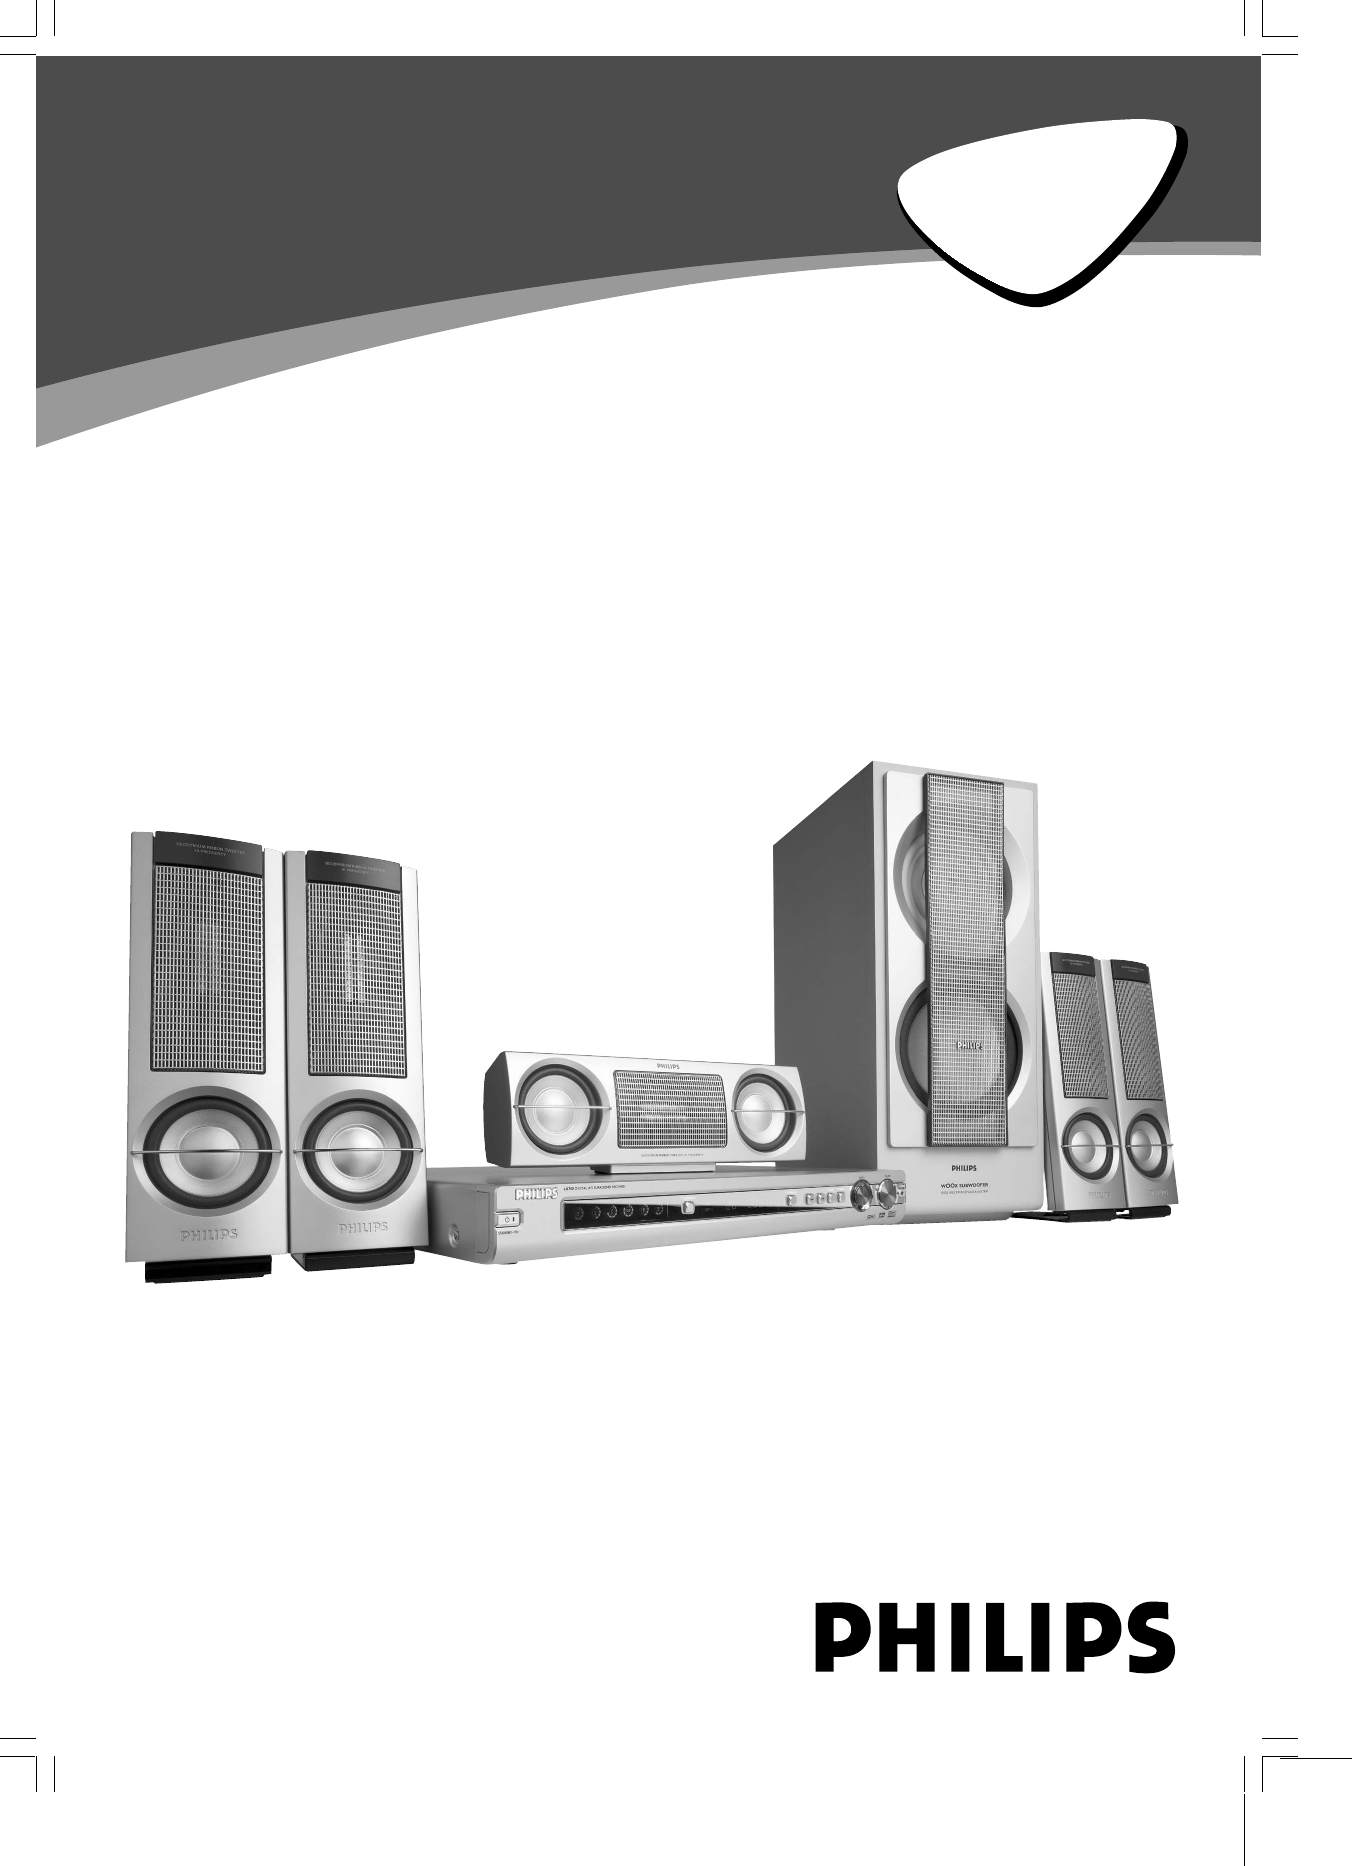 philips home theater system lx700 user guide manualsonline com rh audio manualsonline com manual home theater philips lx700 em portugues Philips Home Theater Receiver